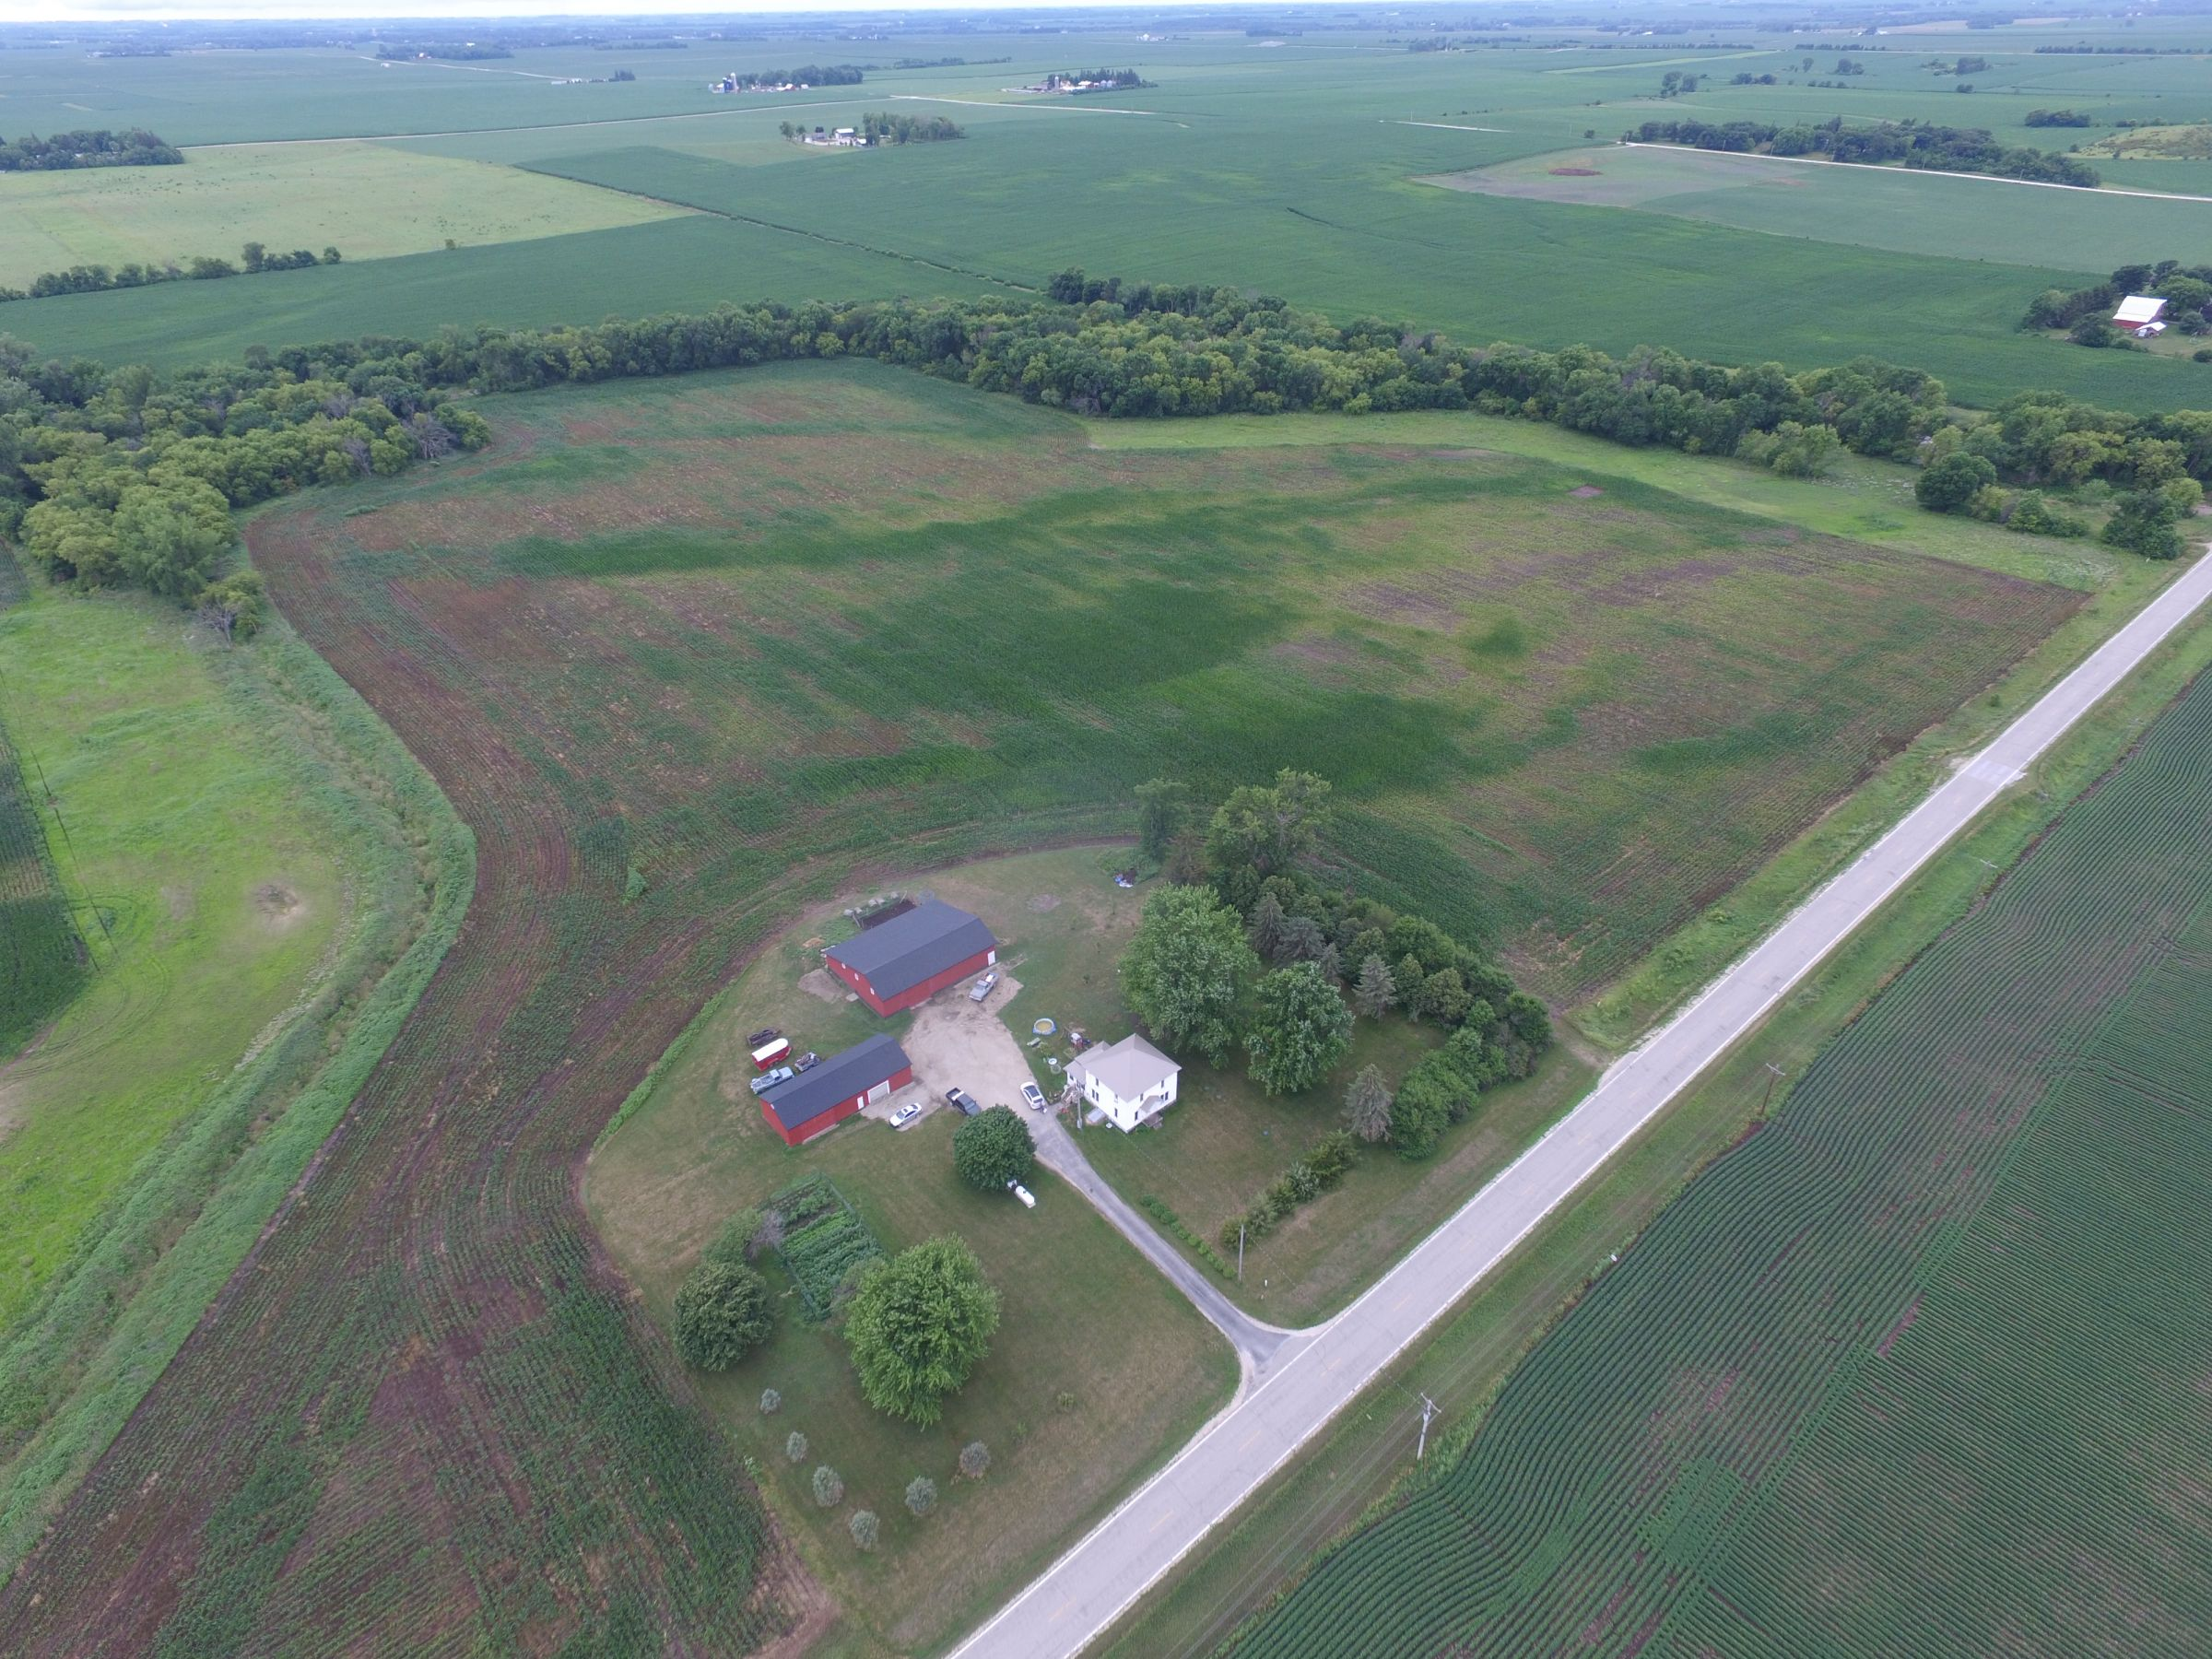 auctions-land-floyd-county-iowa-112-acres-listing-number-15630-5-2021-07-13-192248.JPG